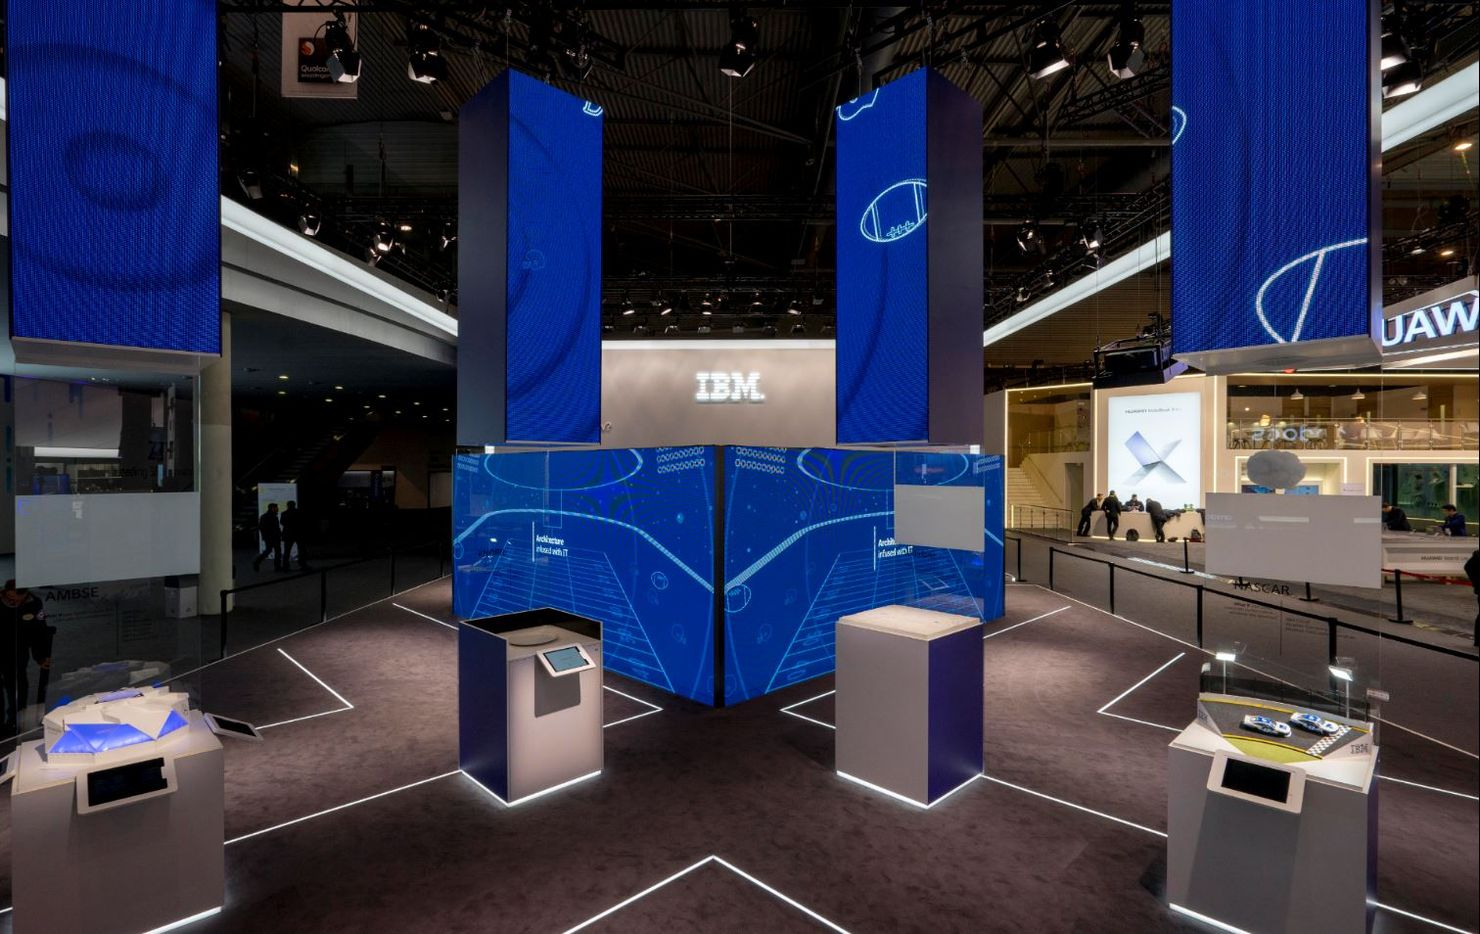 Image 1 for IBM at Mobile World Congress